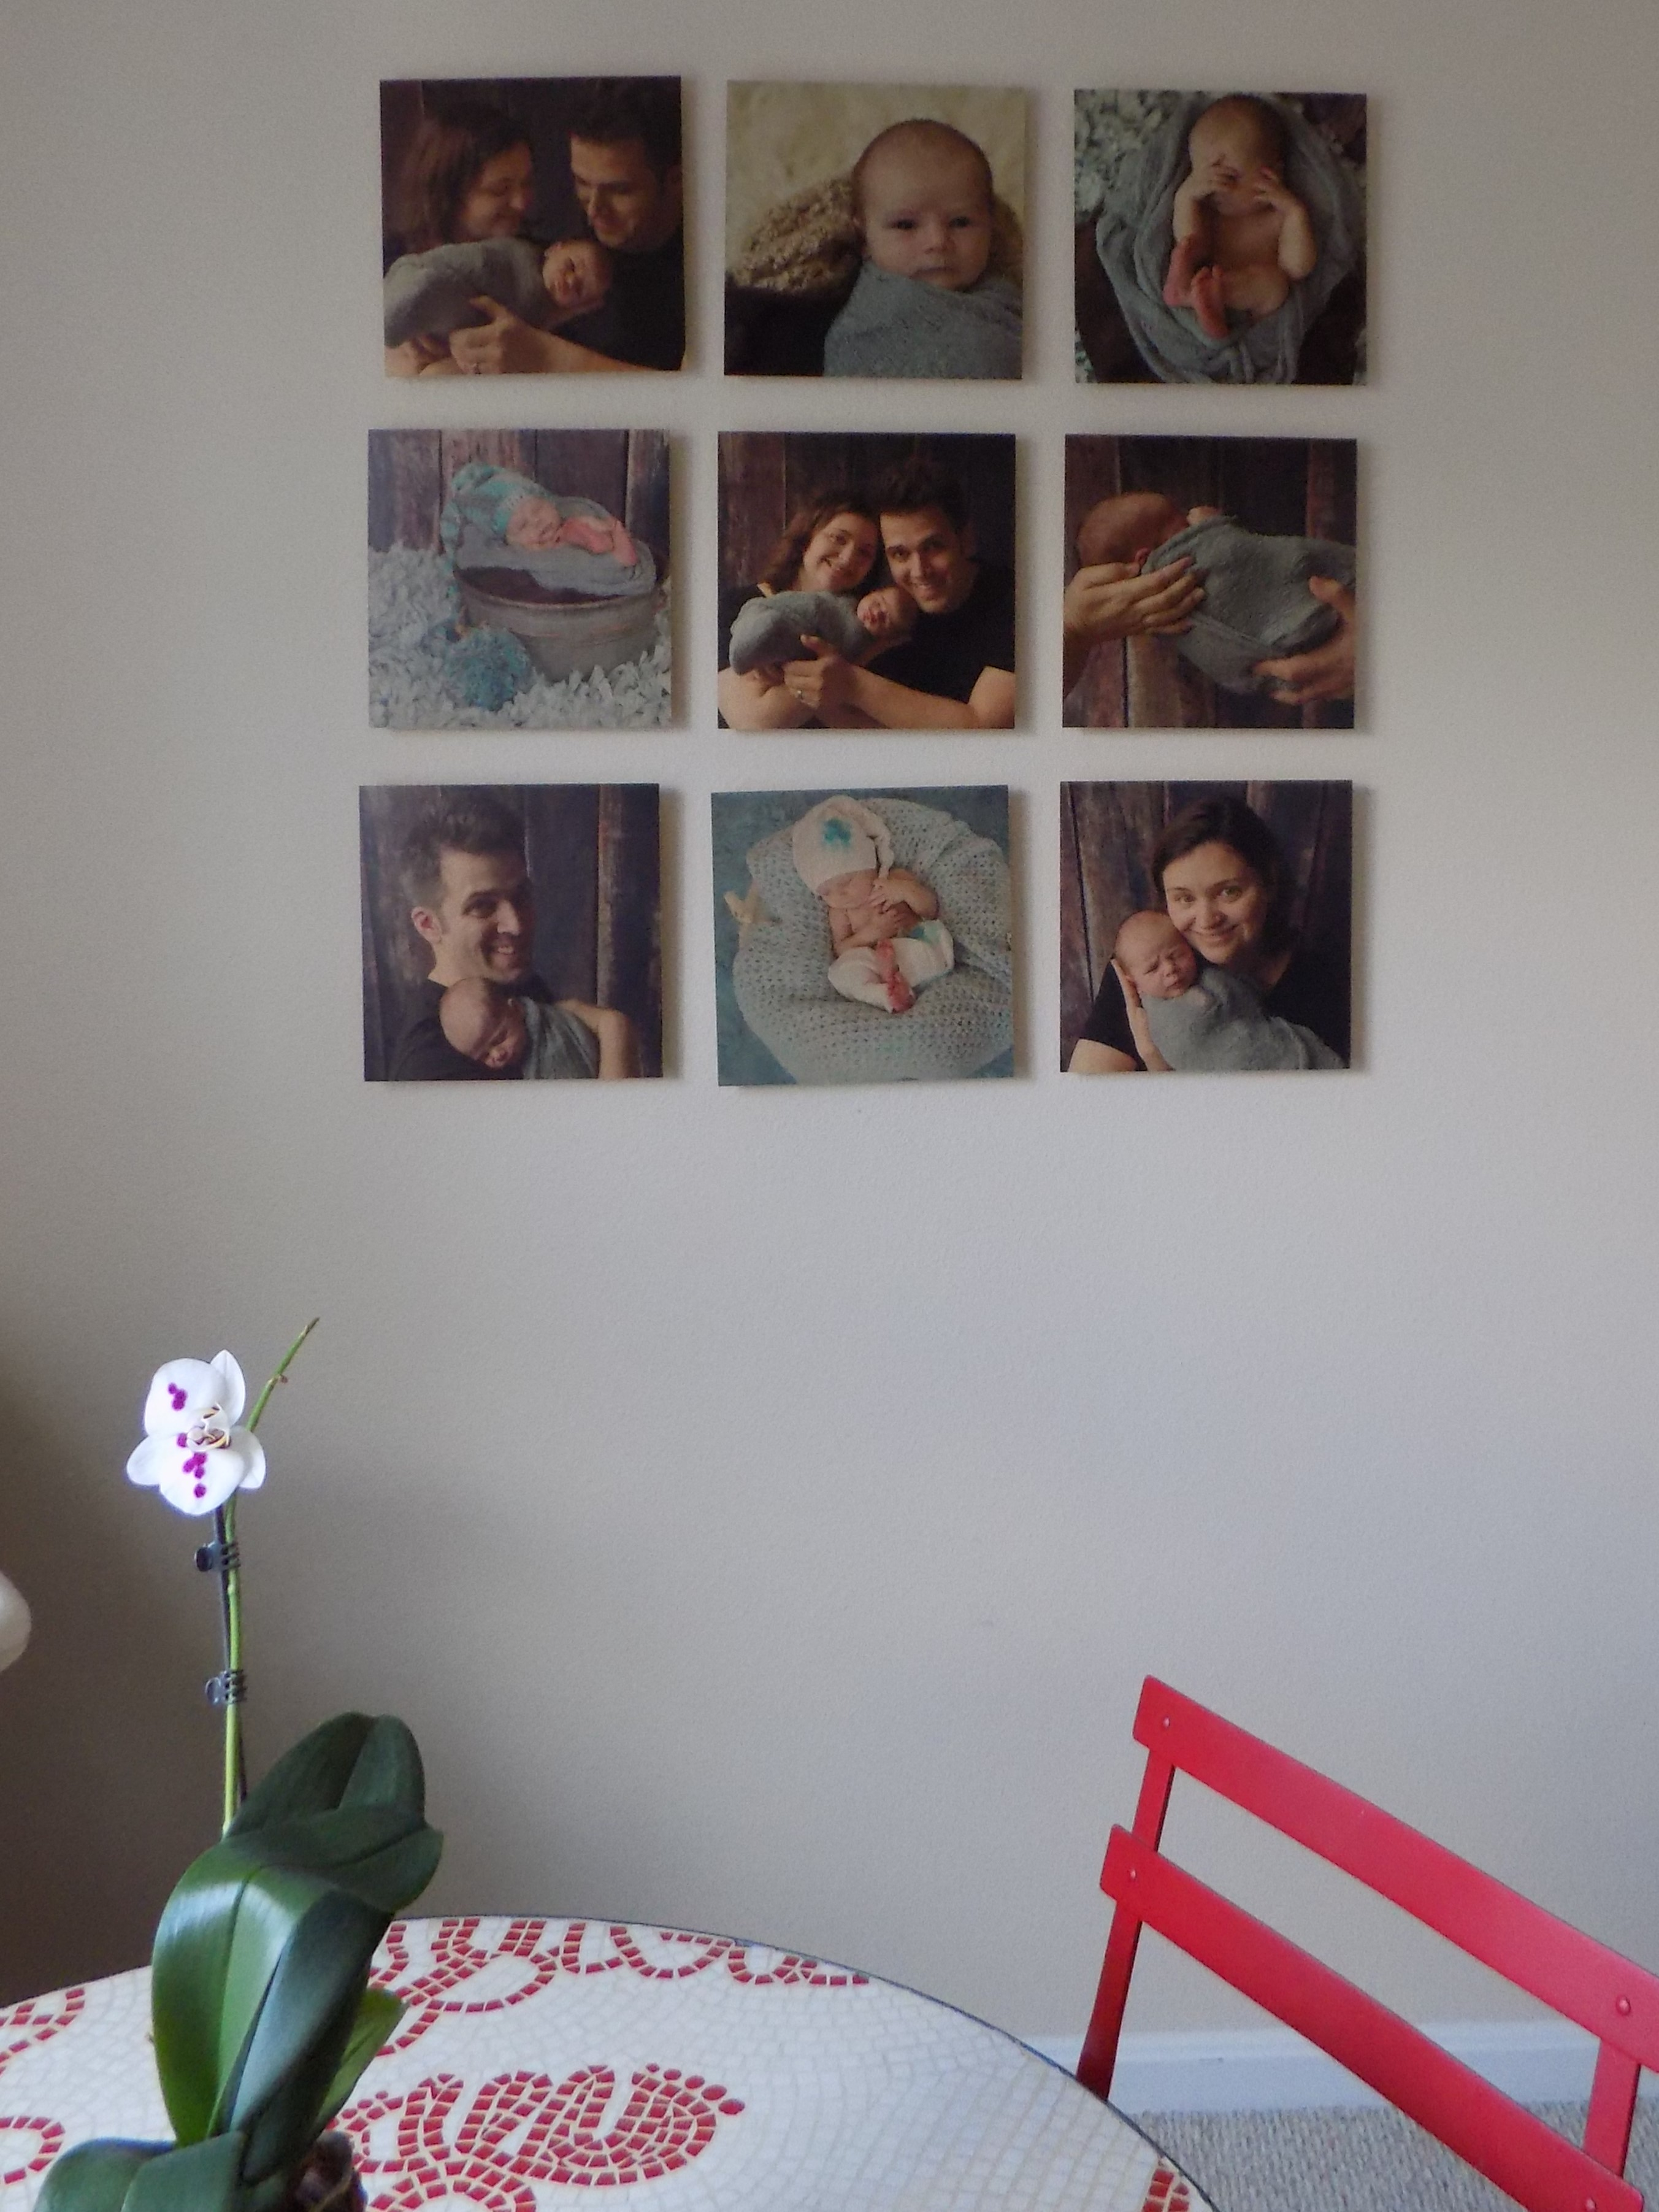 A Unique Way to Display Newborn Photos